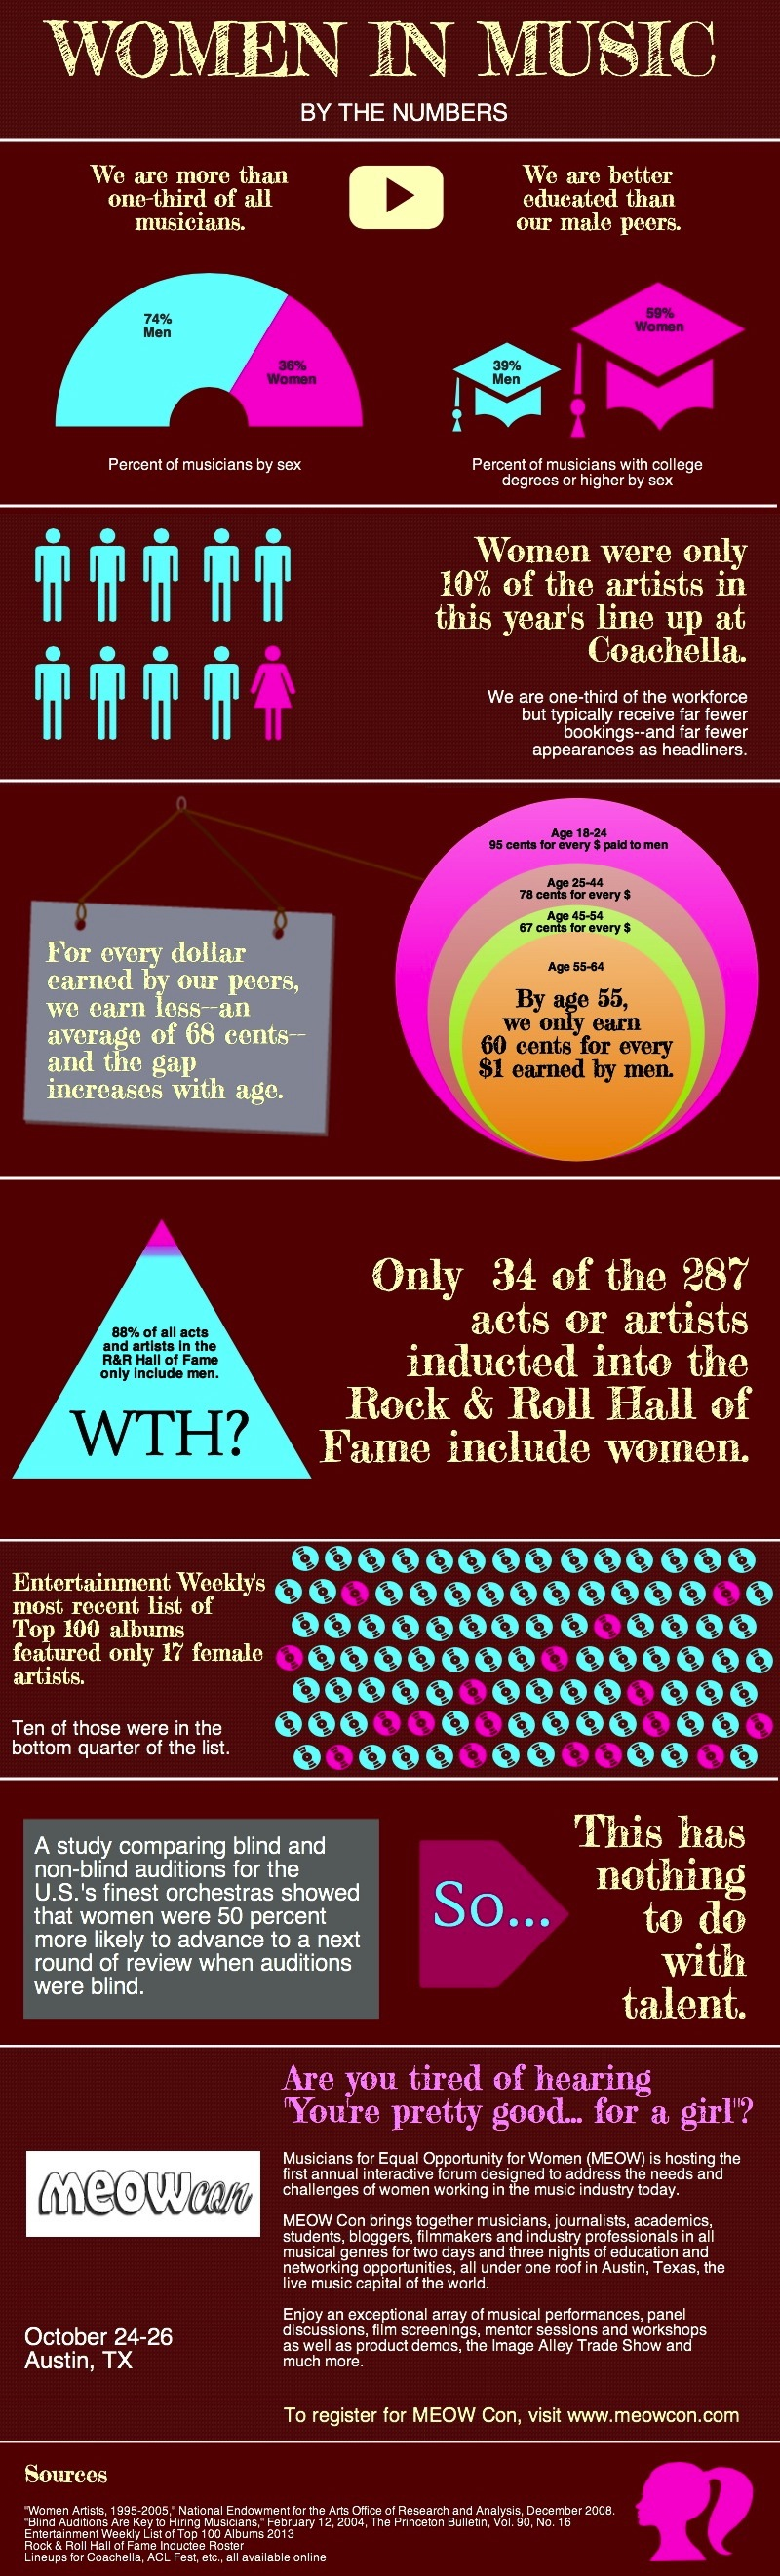 Women-In-Music-Infographic-6